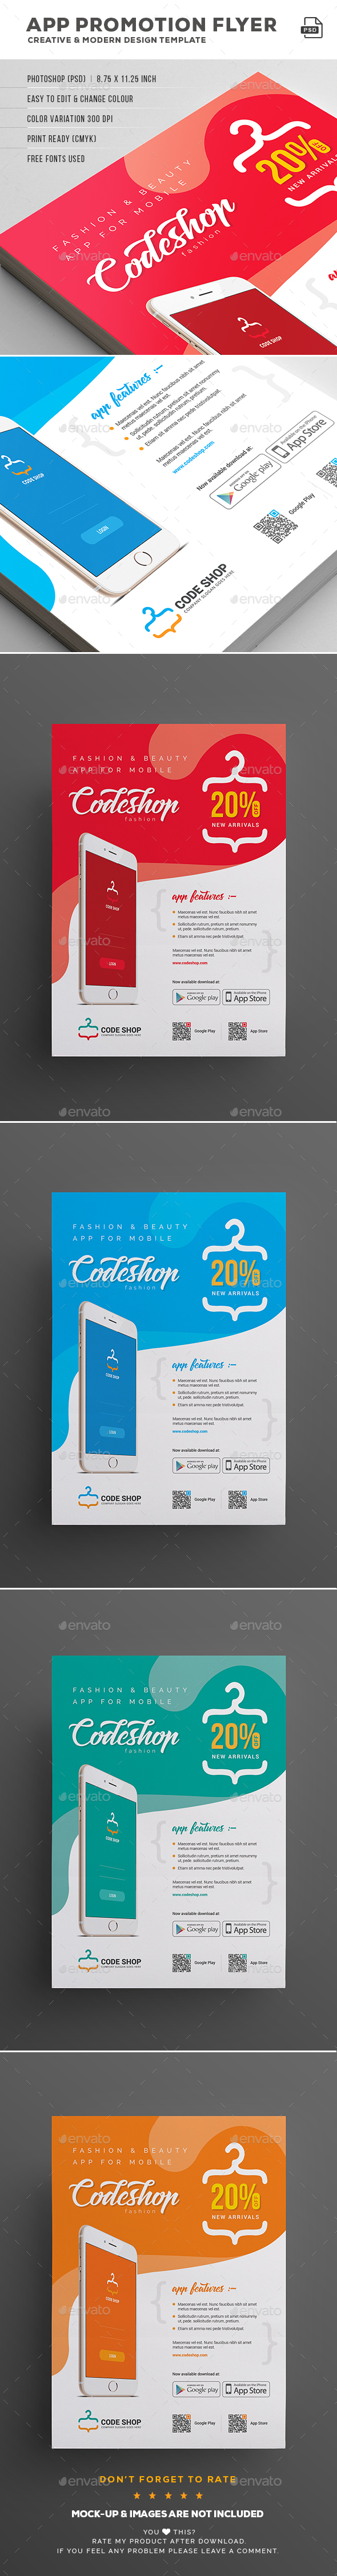 Mobile App Flyer - Commerce Flyers